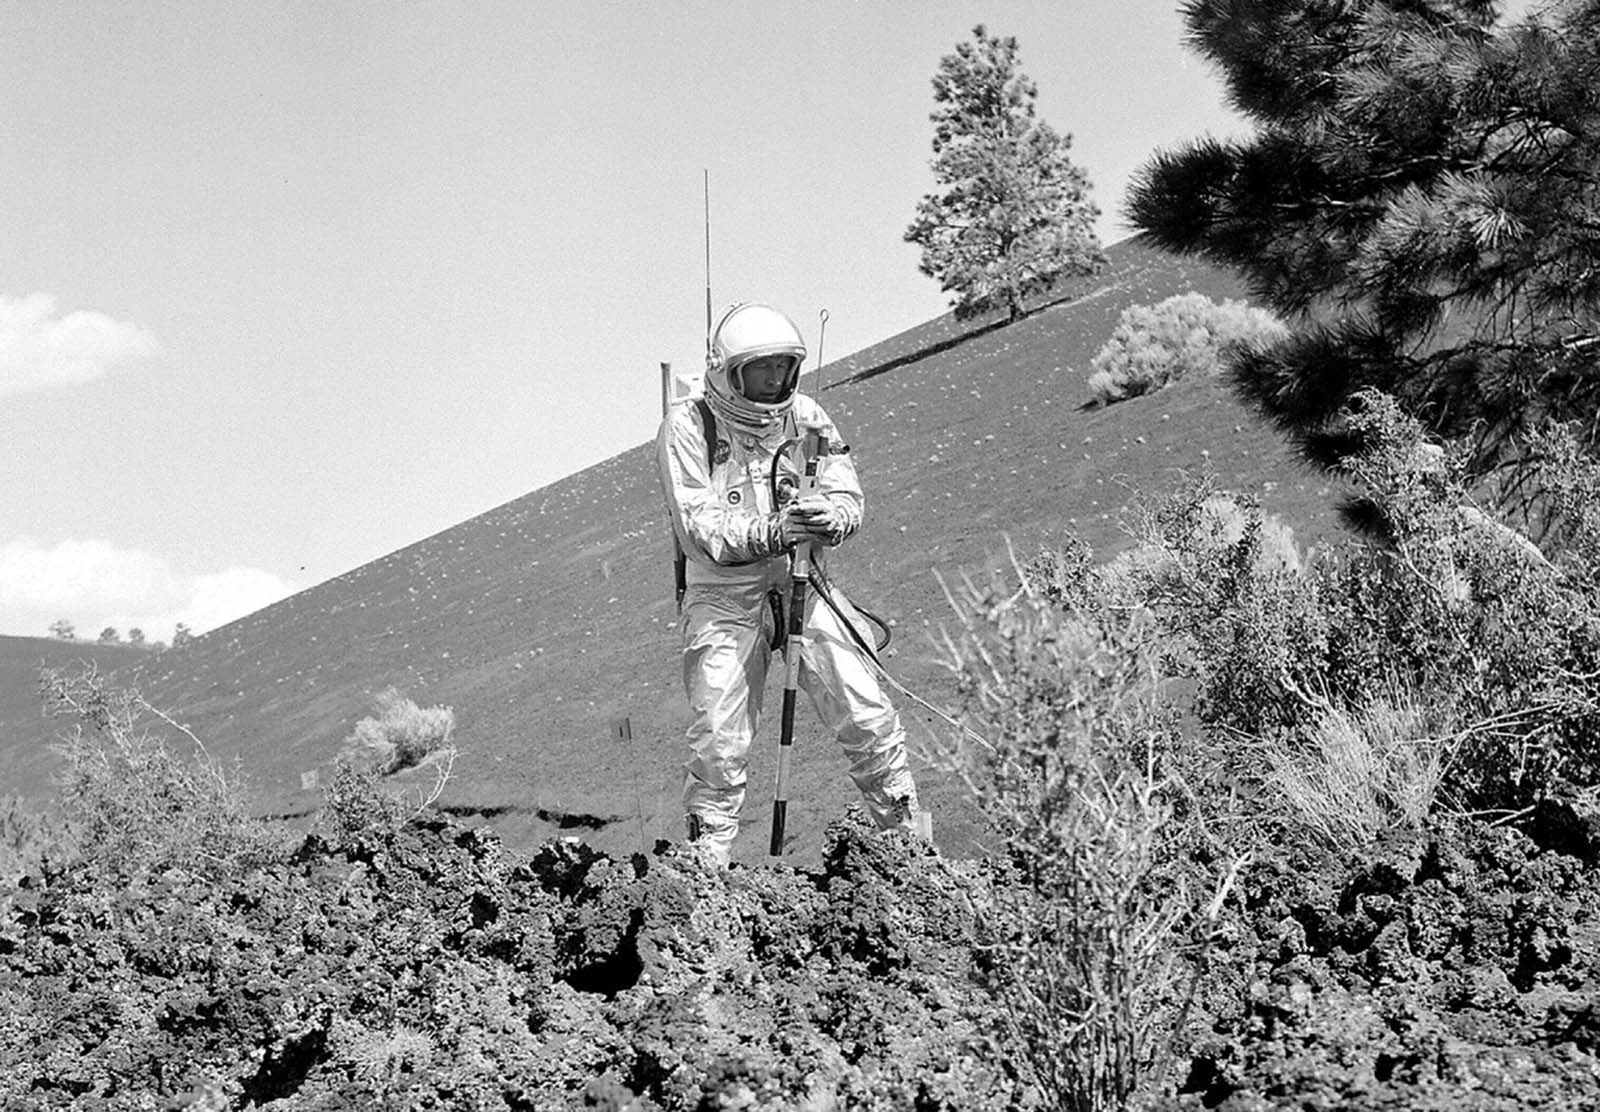 A suited subject stands on the edge of the Bonito Lava Flow near Arizona's Sunset Crater volcano, with an early concept of a